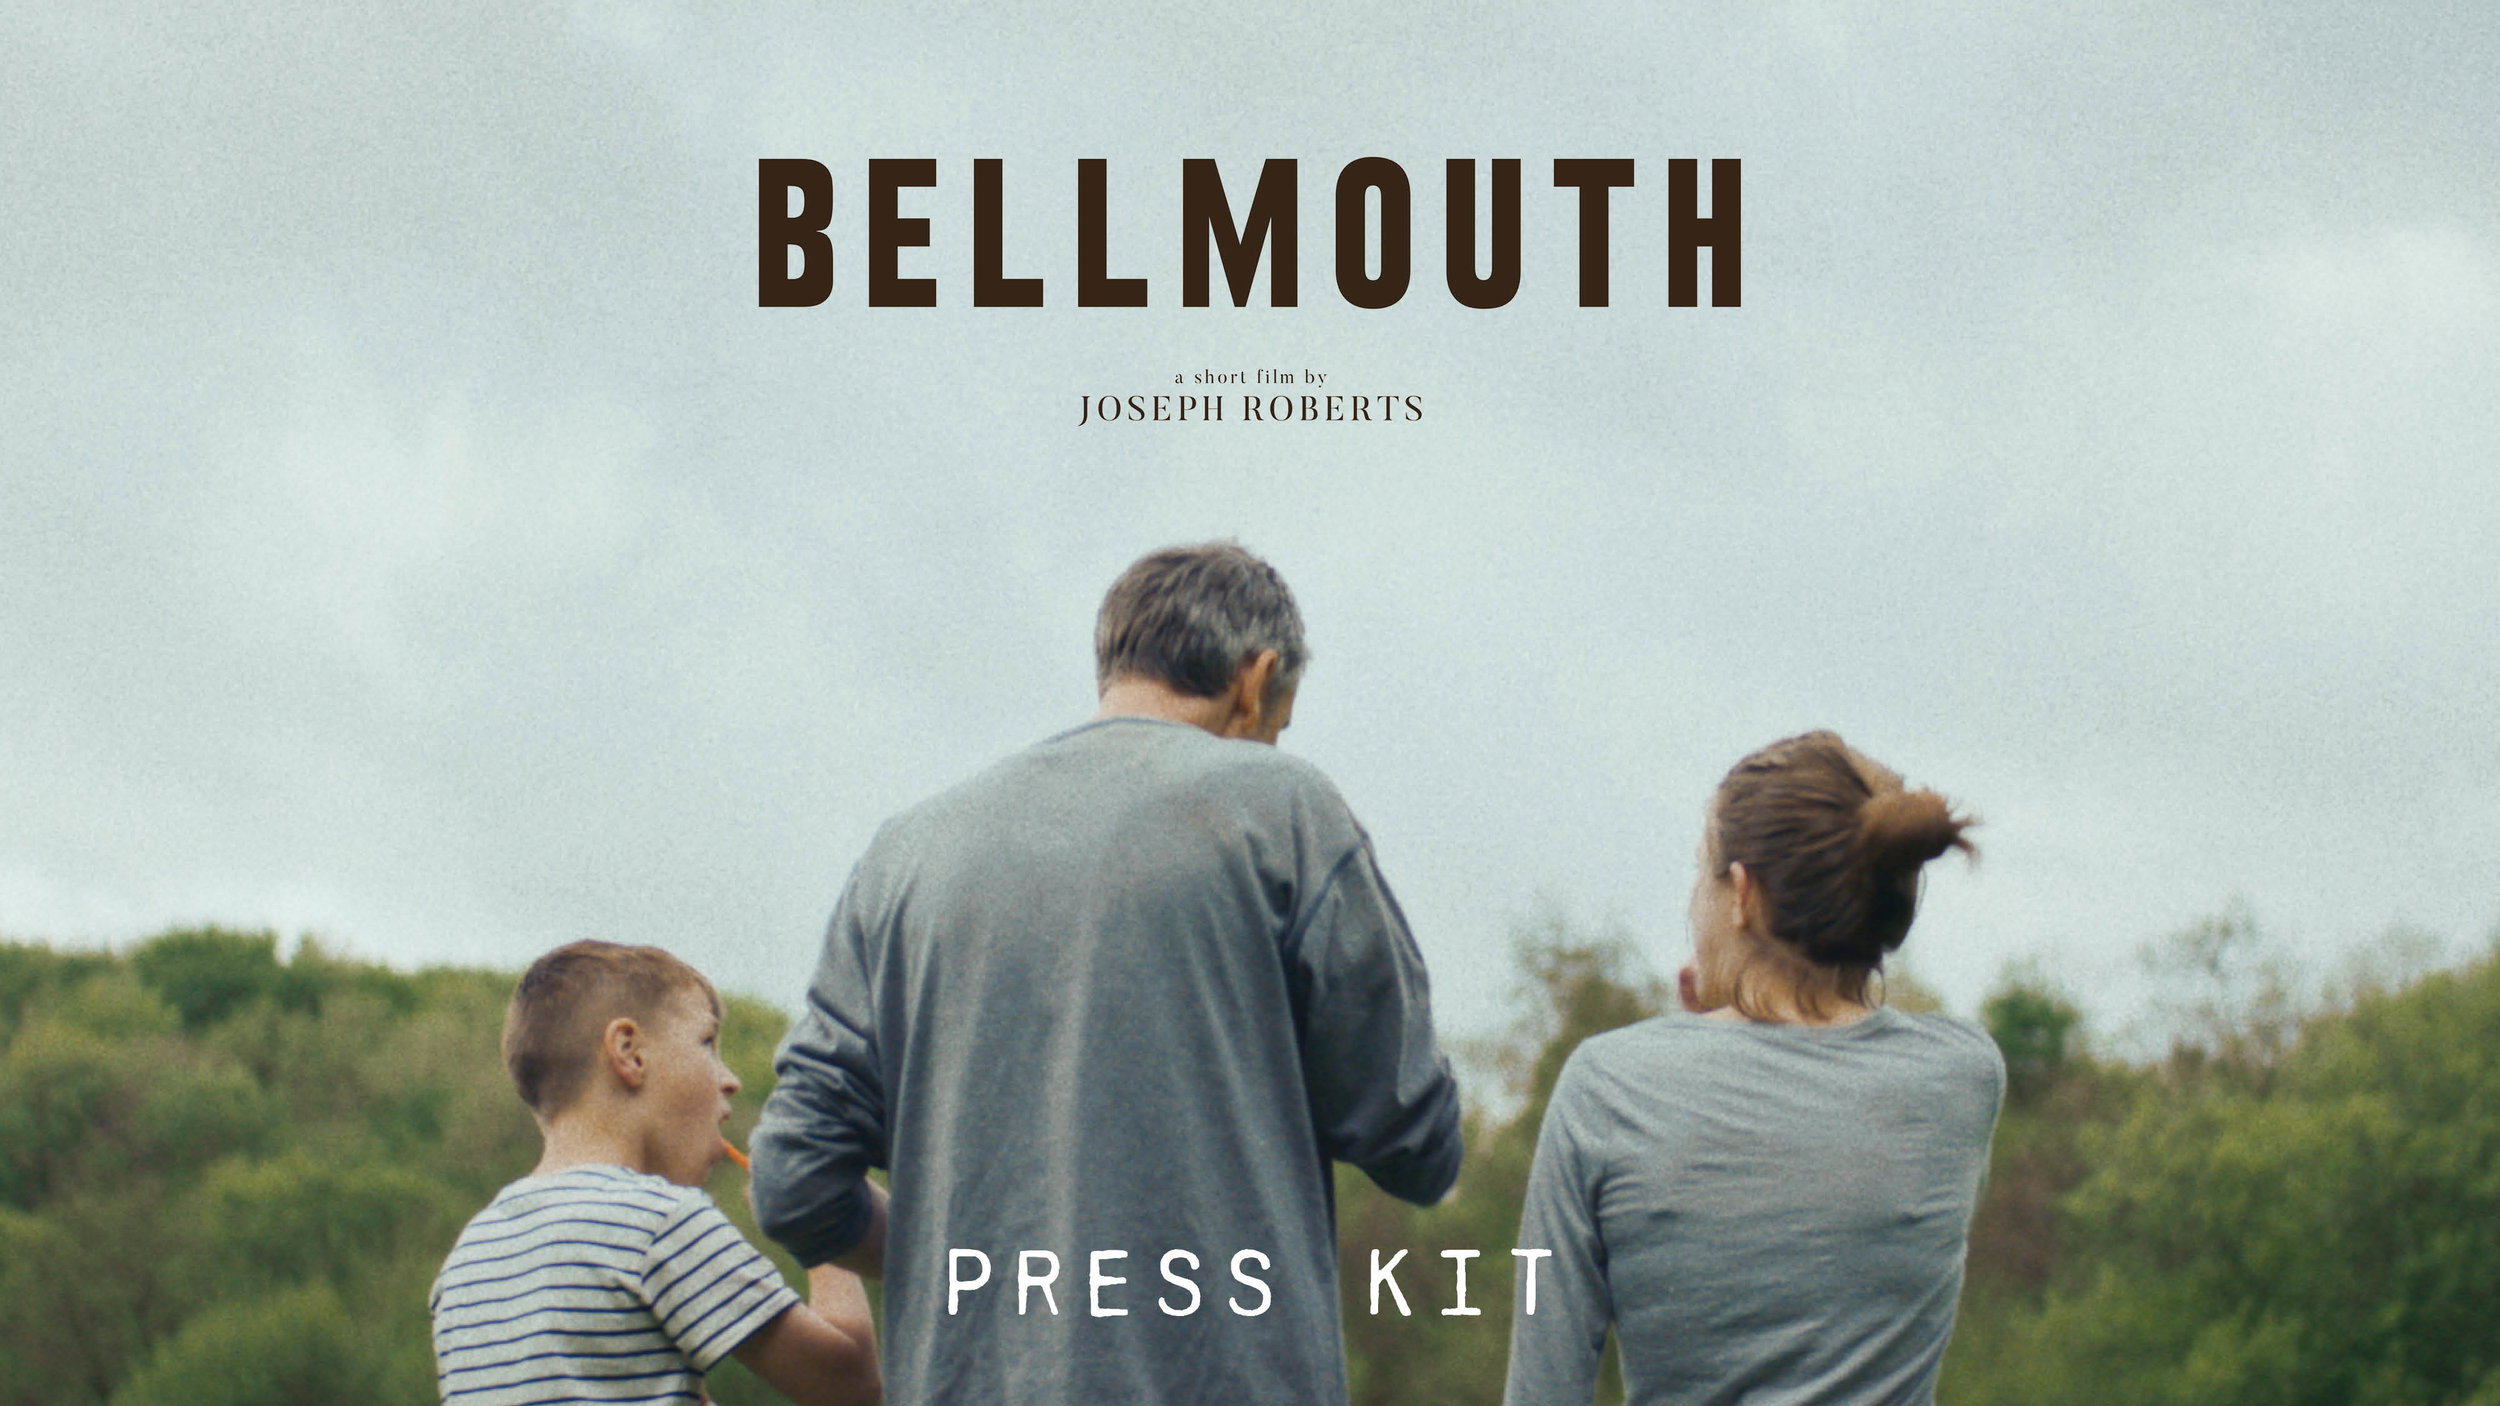 Bellmouth Press Kit 07.01.19.jpg